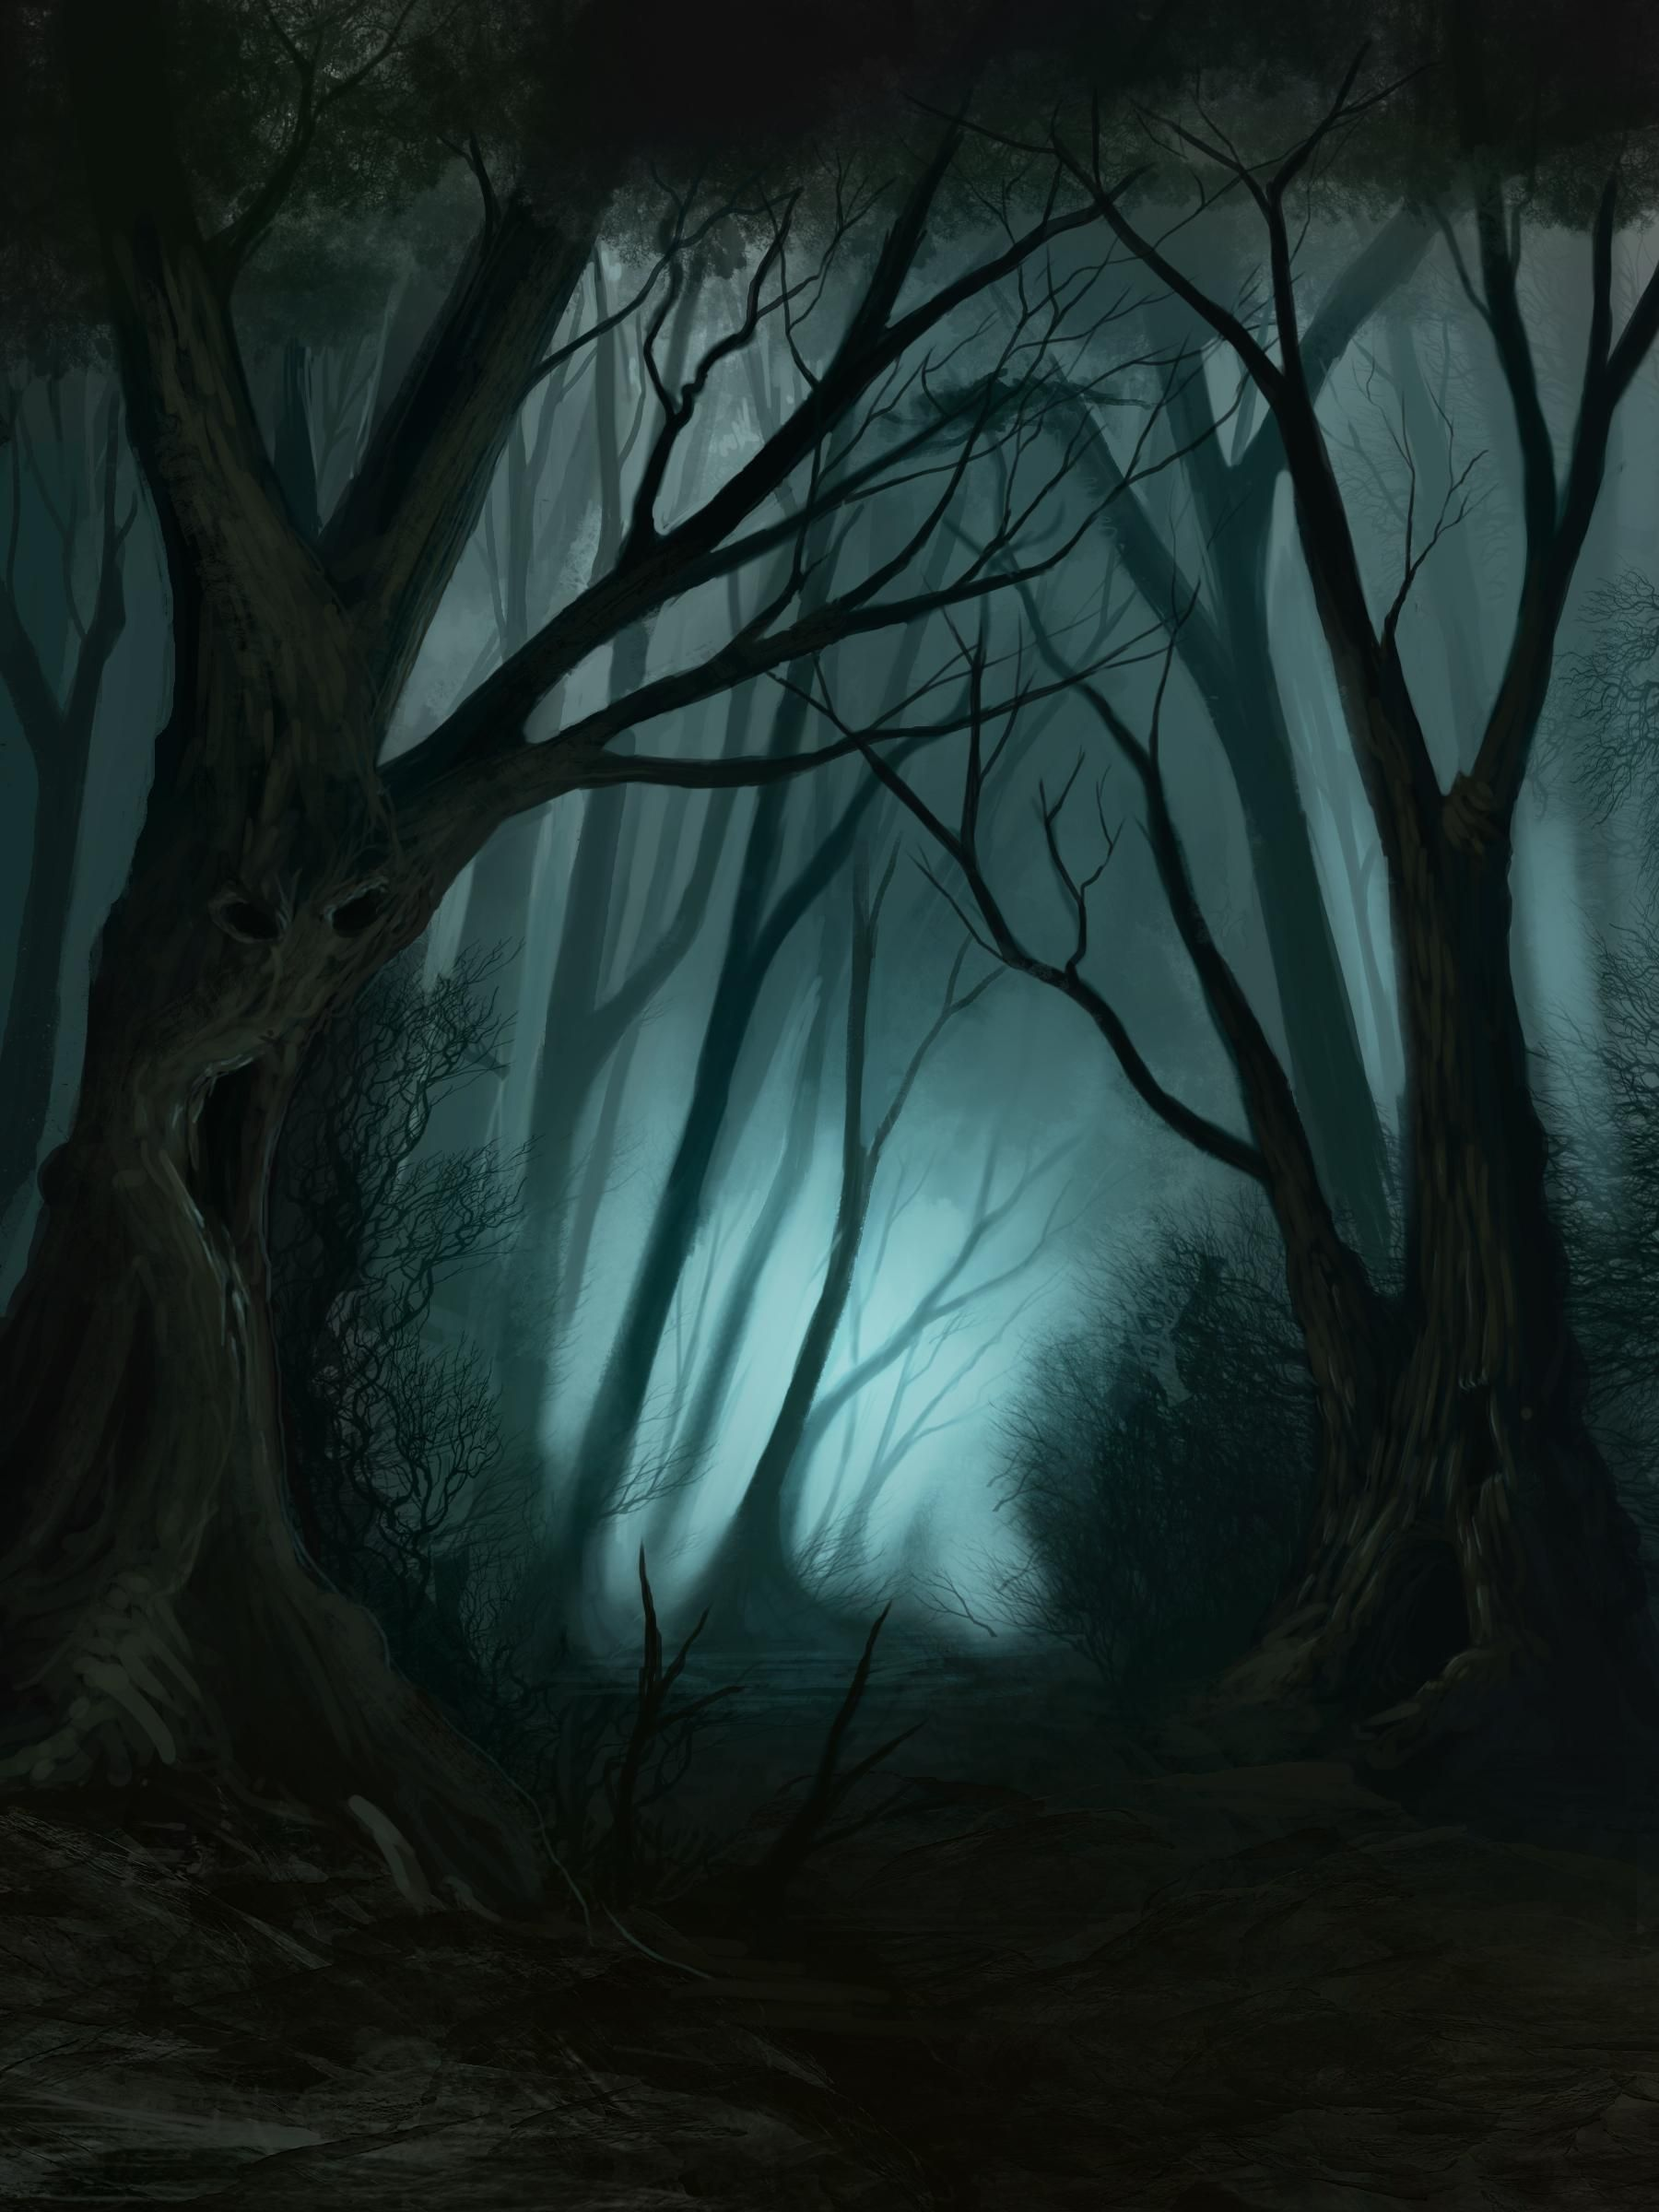 Pin by Harilal Haridasan on Creepy Forest in 2019 | Forest